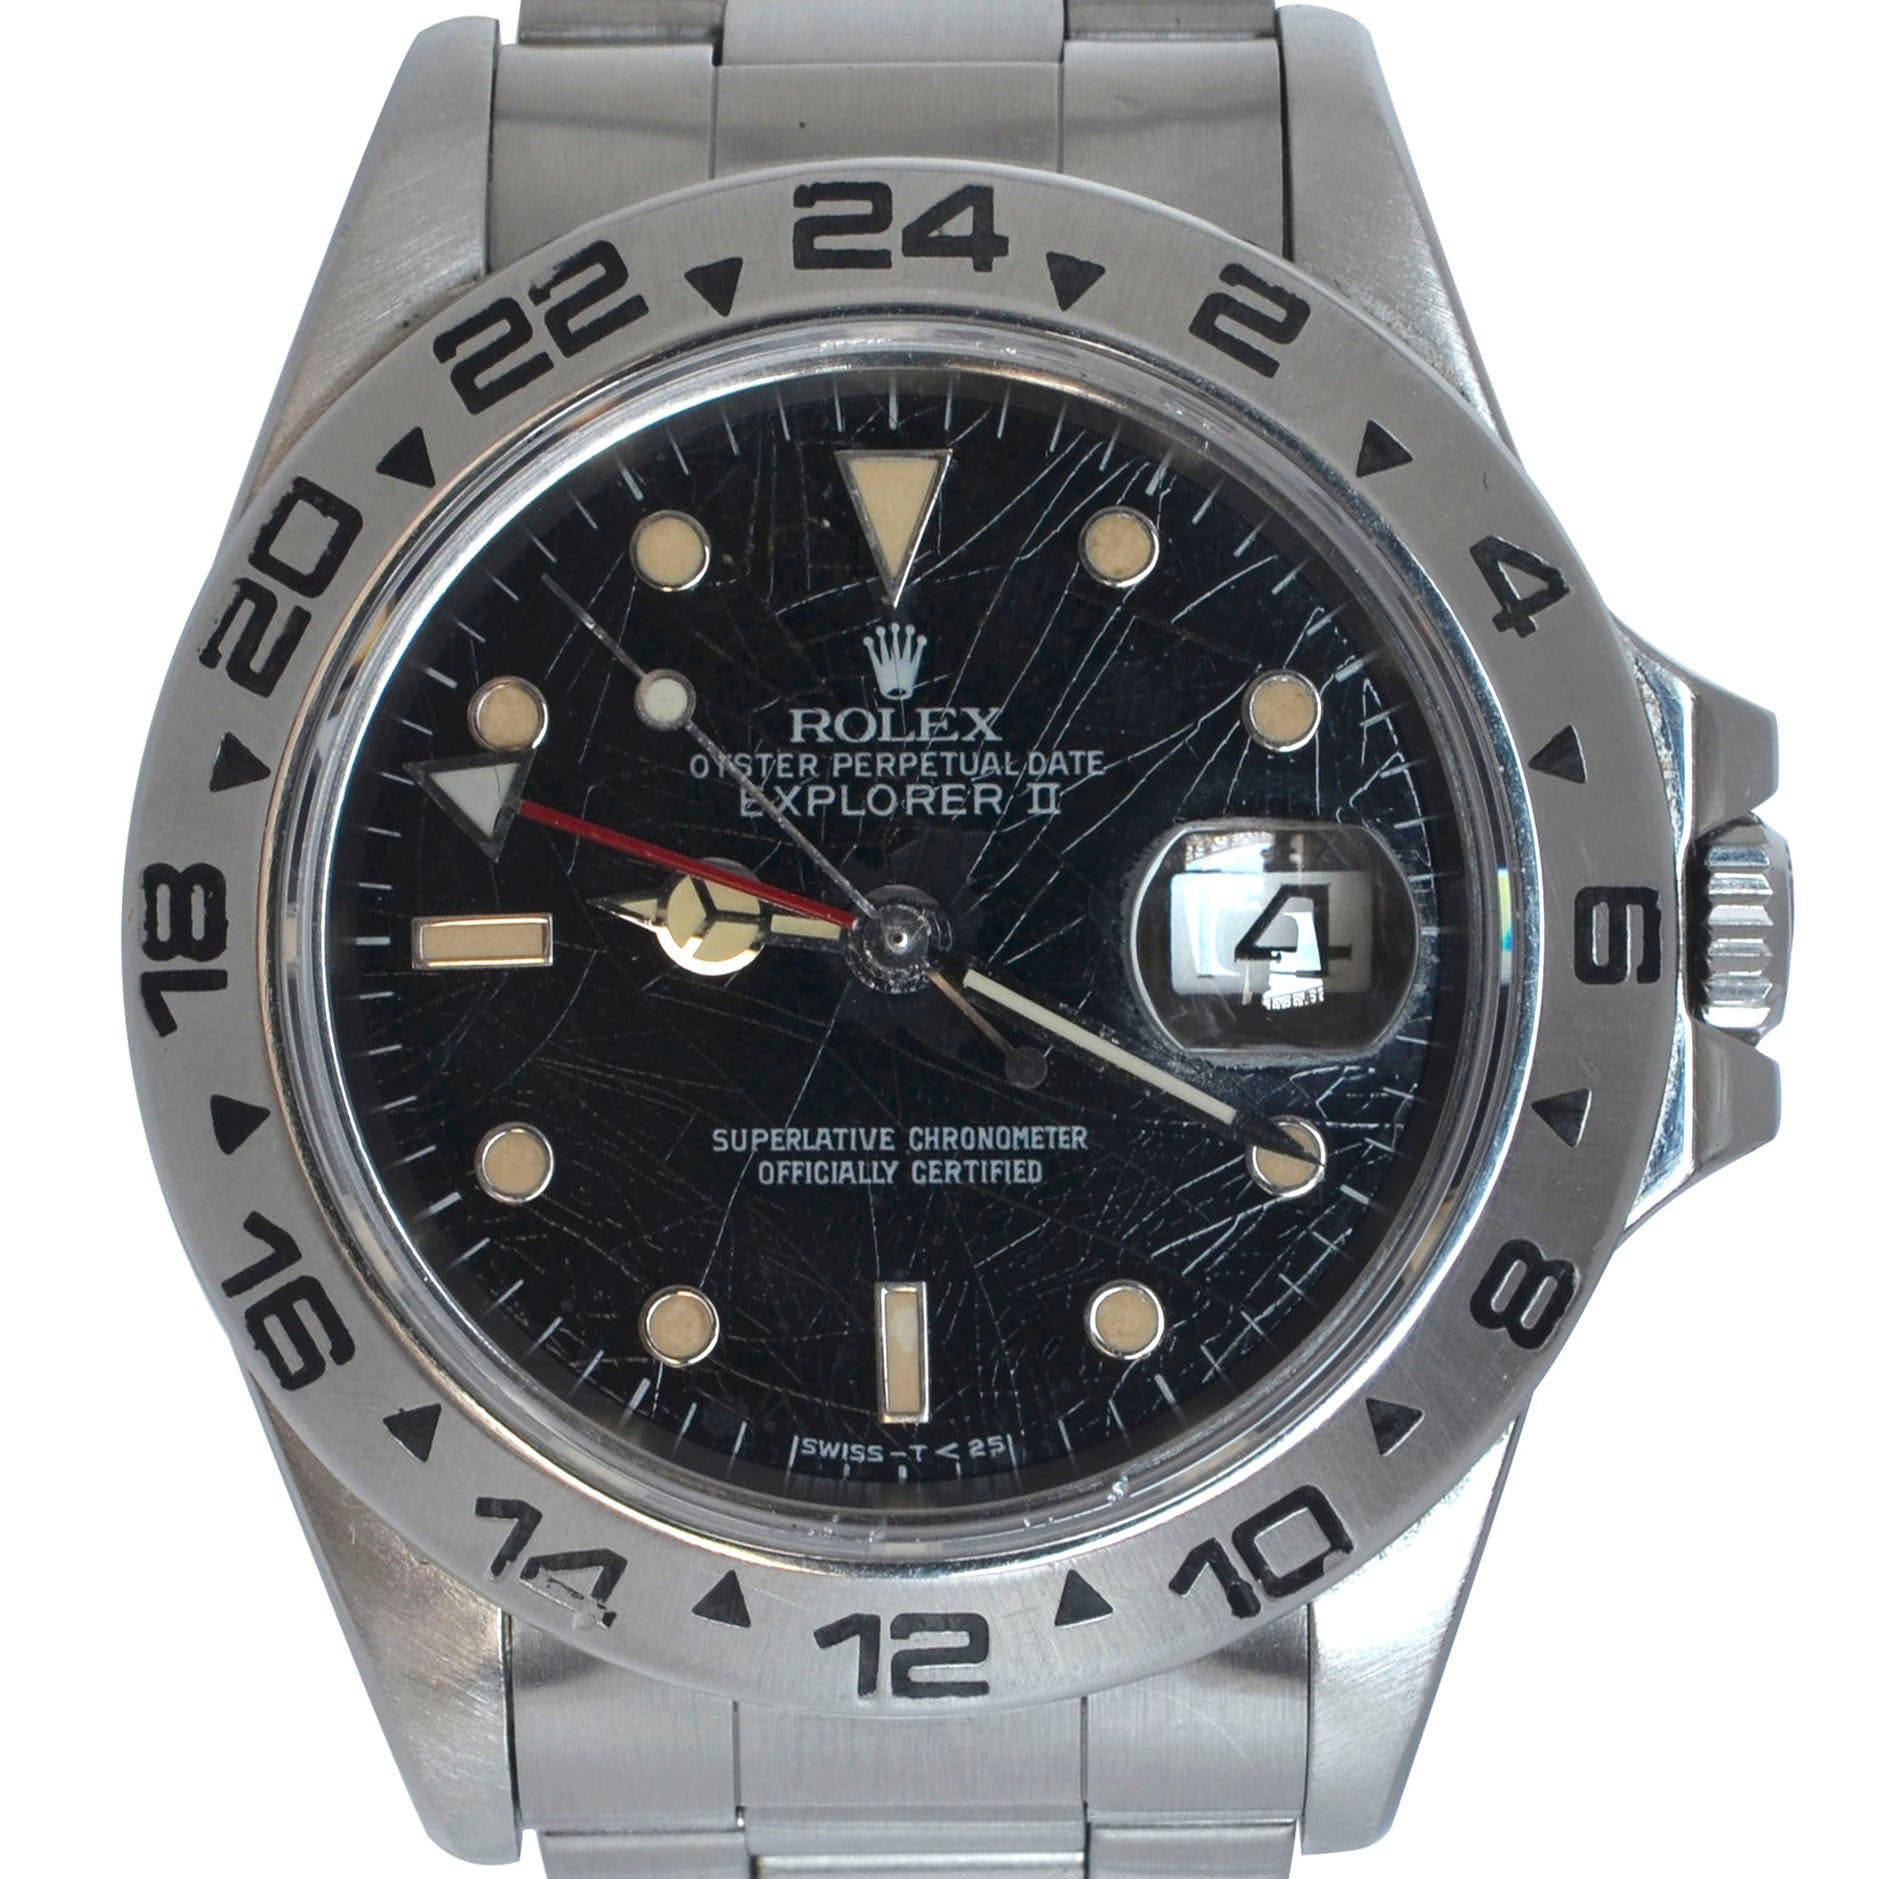 Rolex Explorer II 16550 with a spider dial